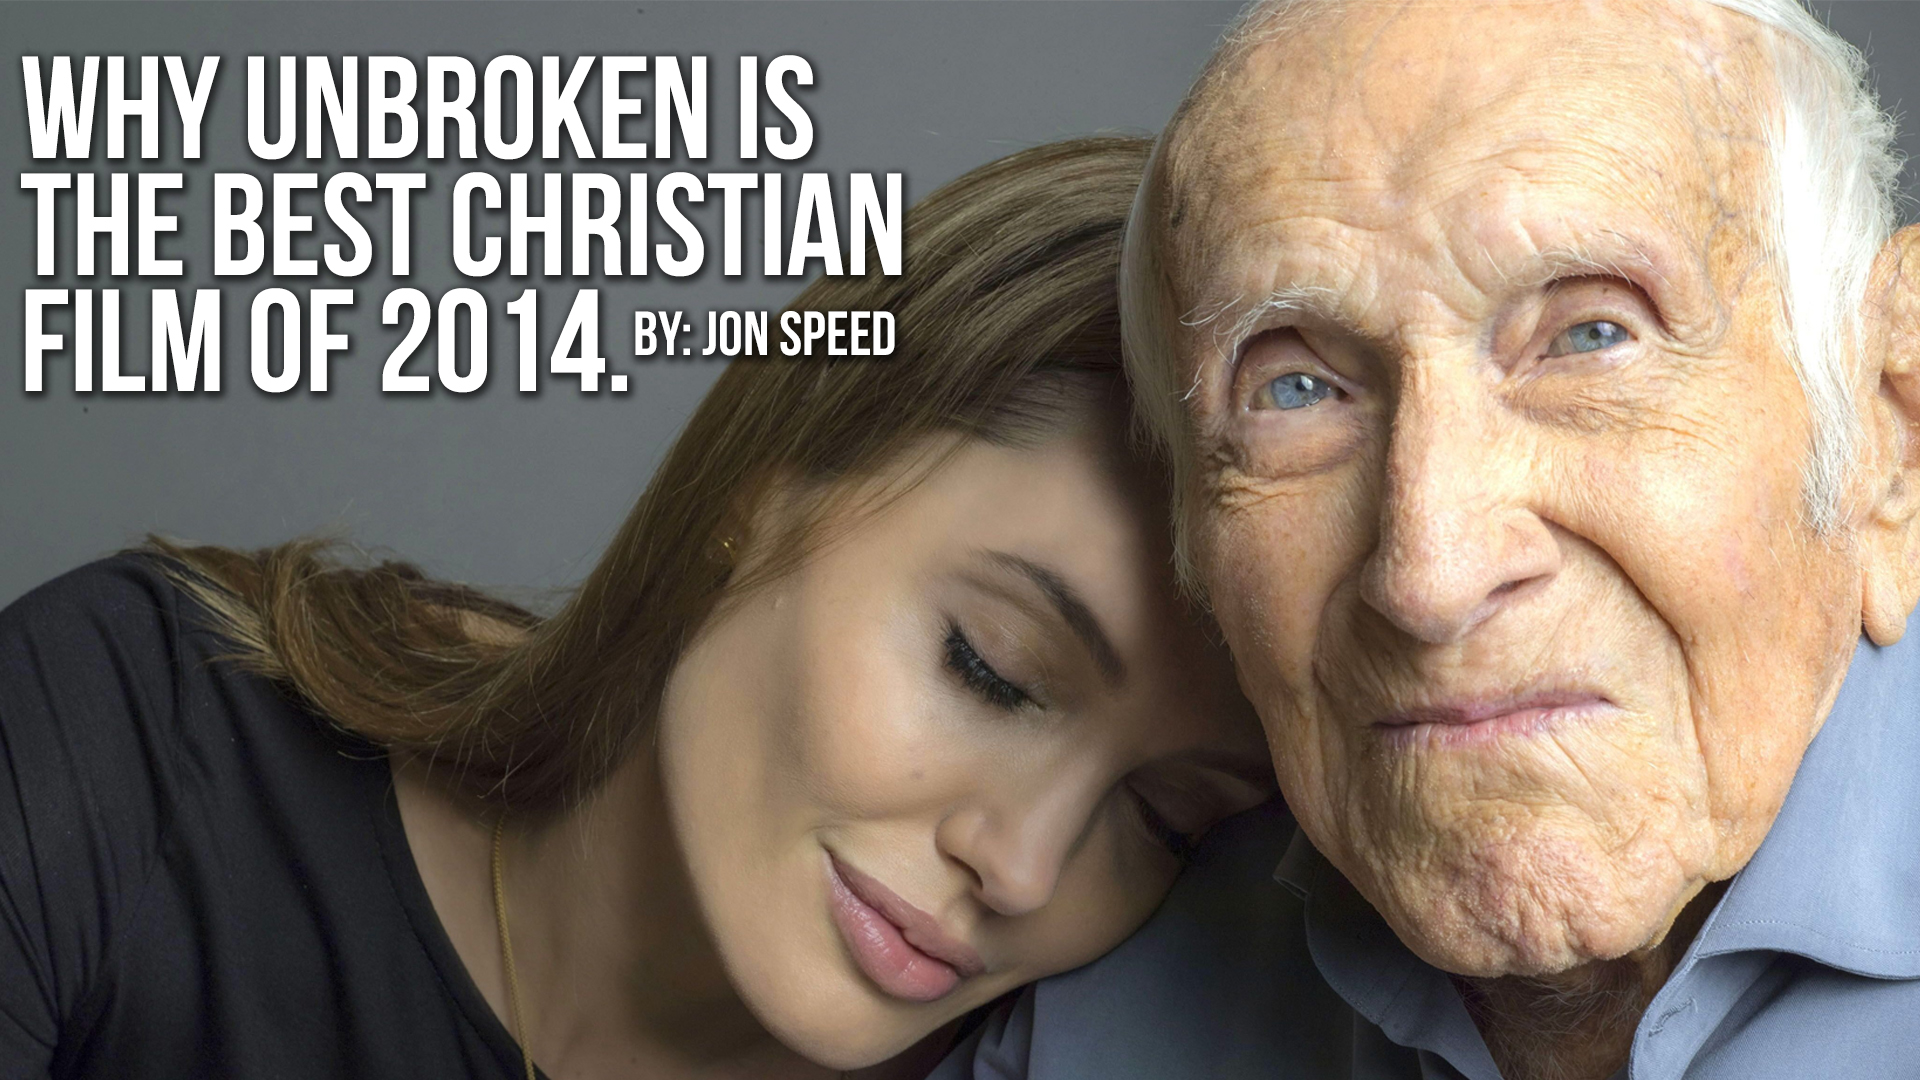 Why Unbroken is the best Christian film of 2014